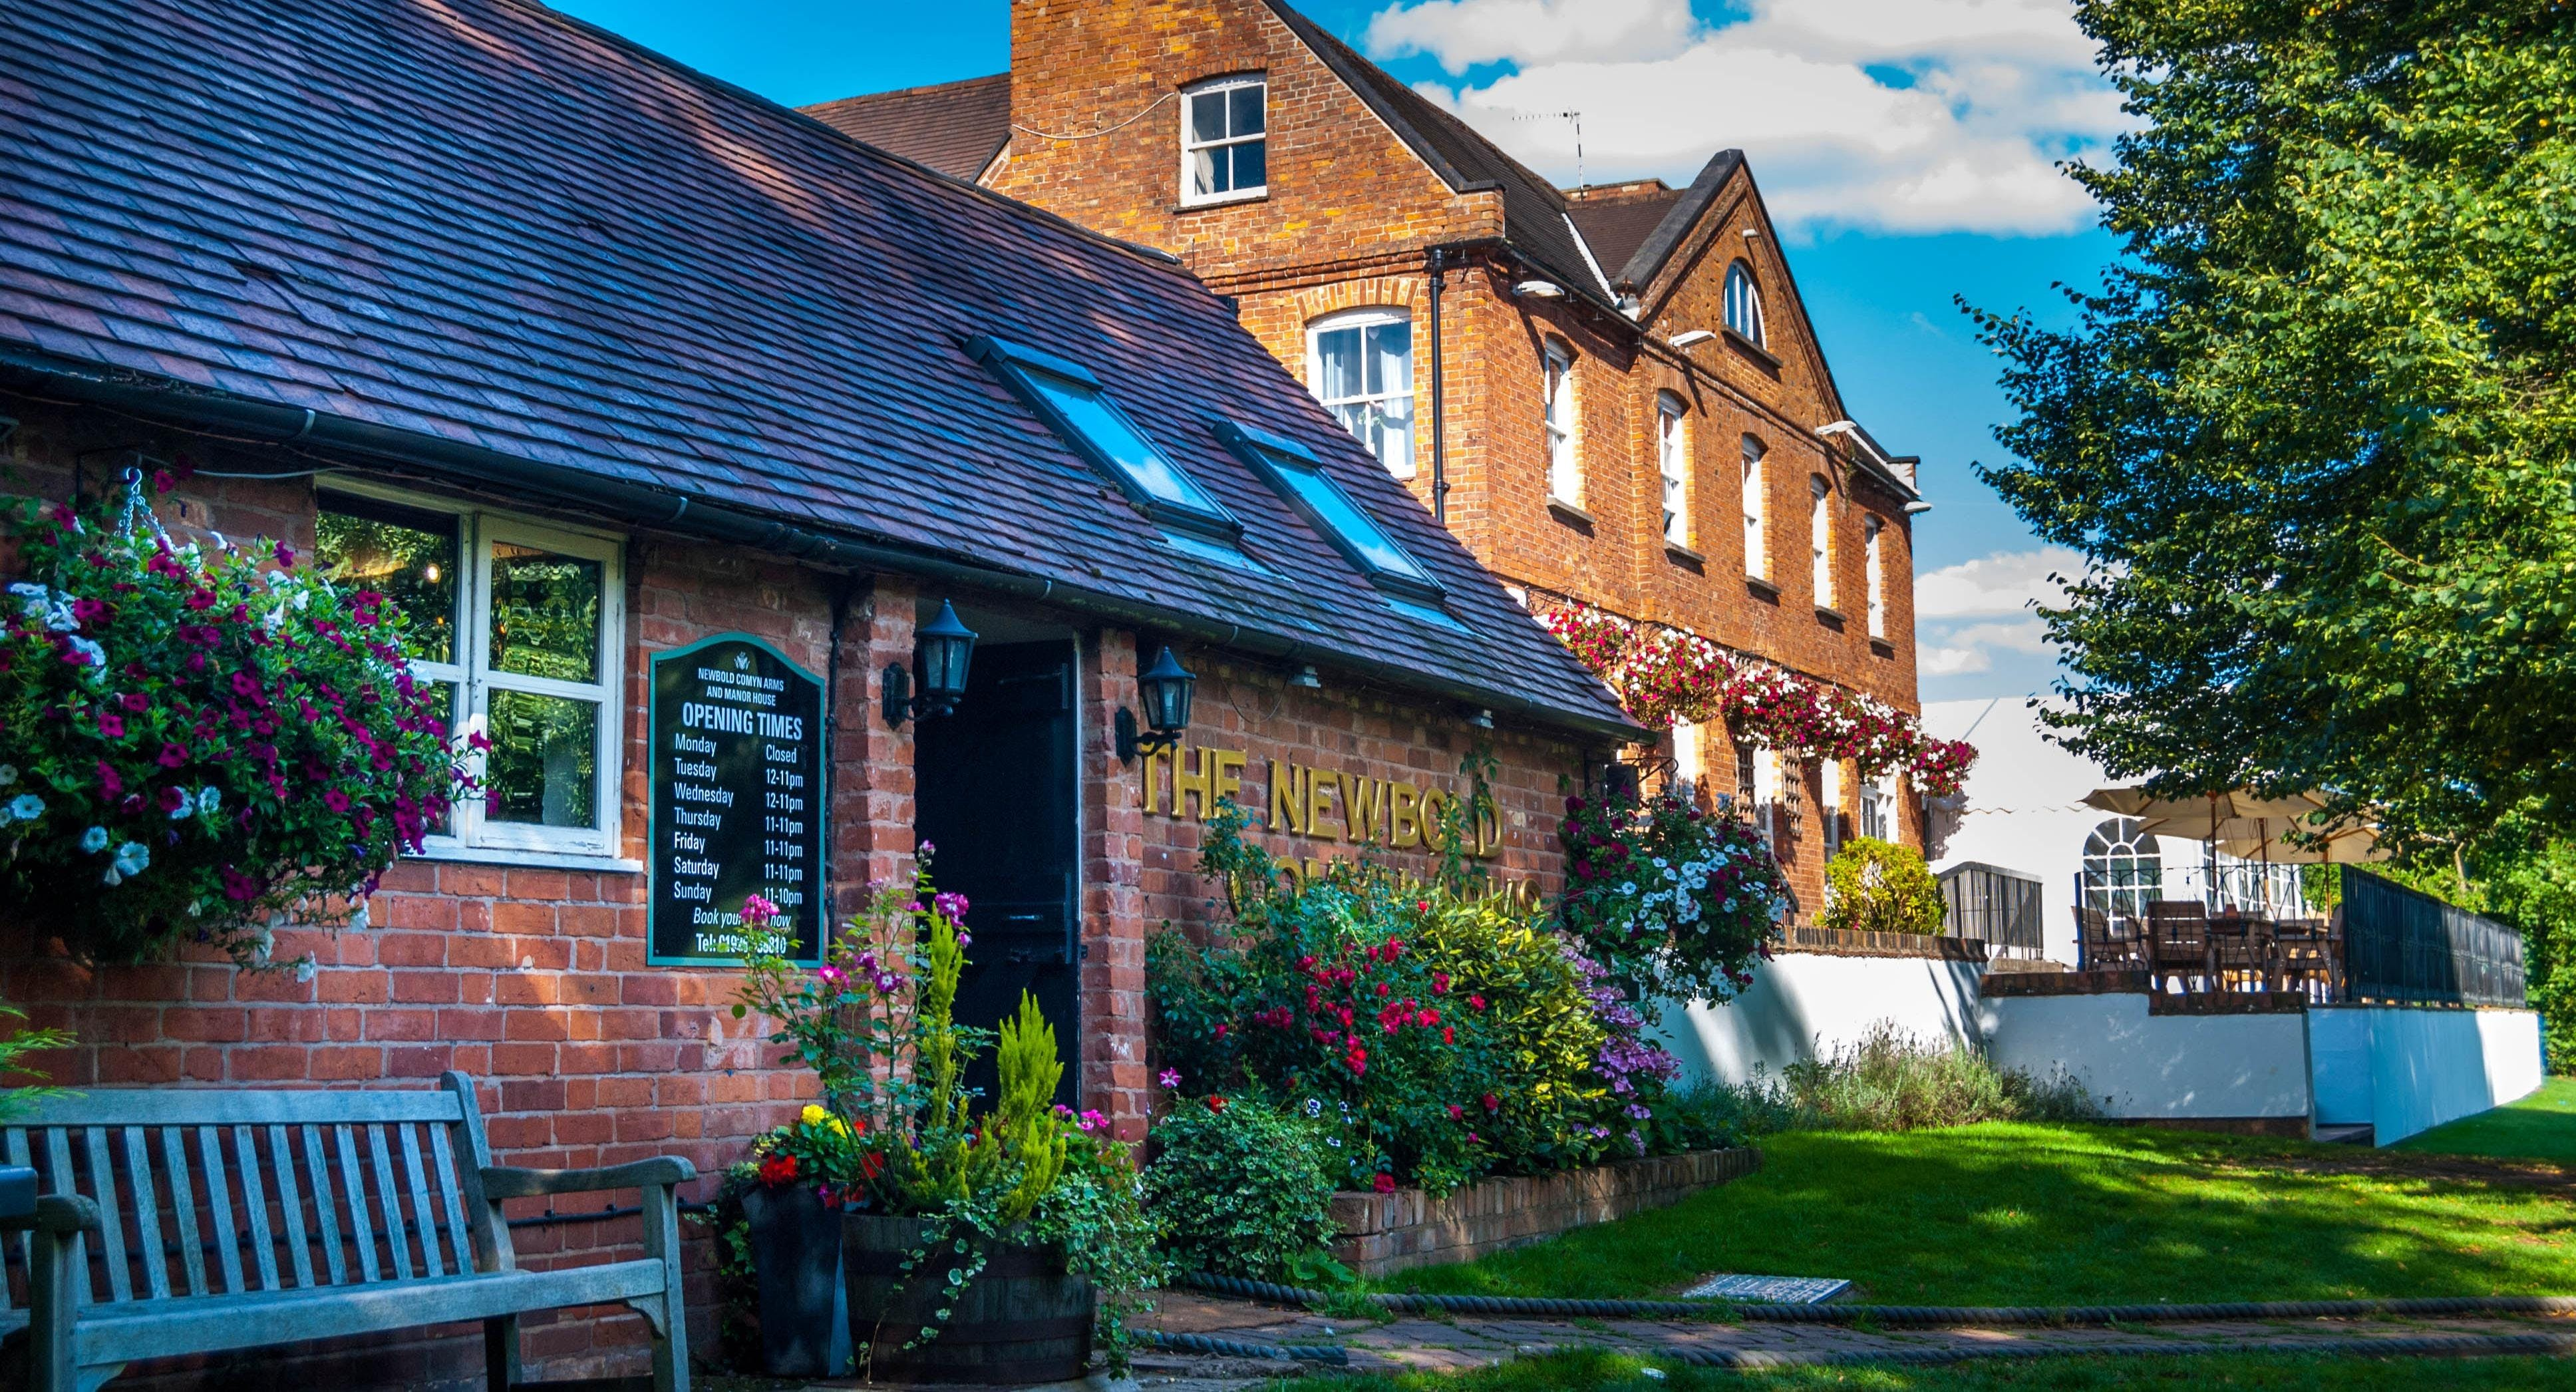 Newbold Comyn Arms Royal Leamington Spa image 1